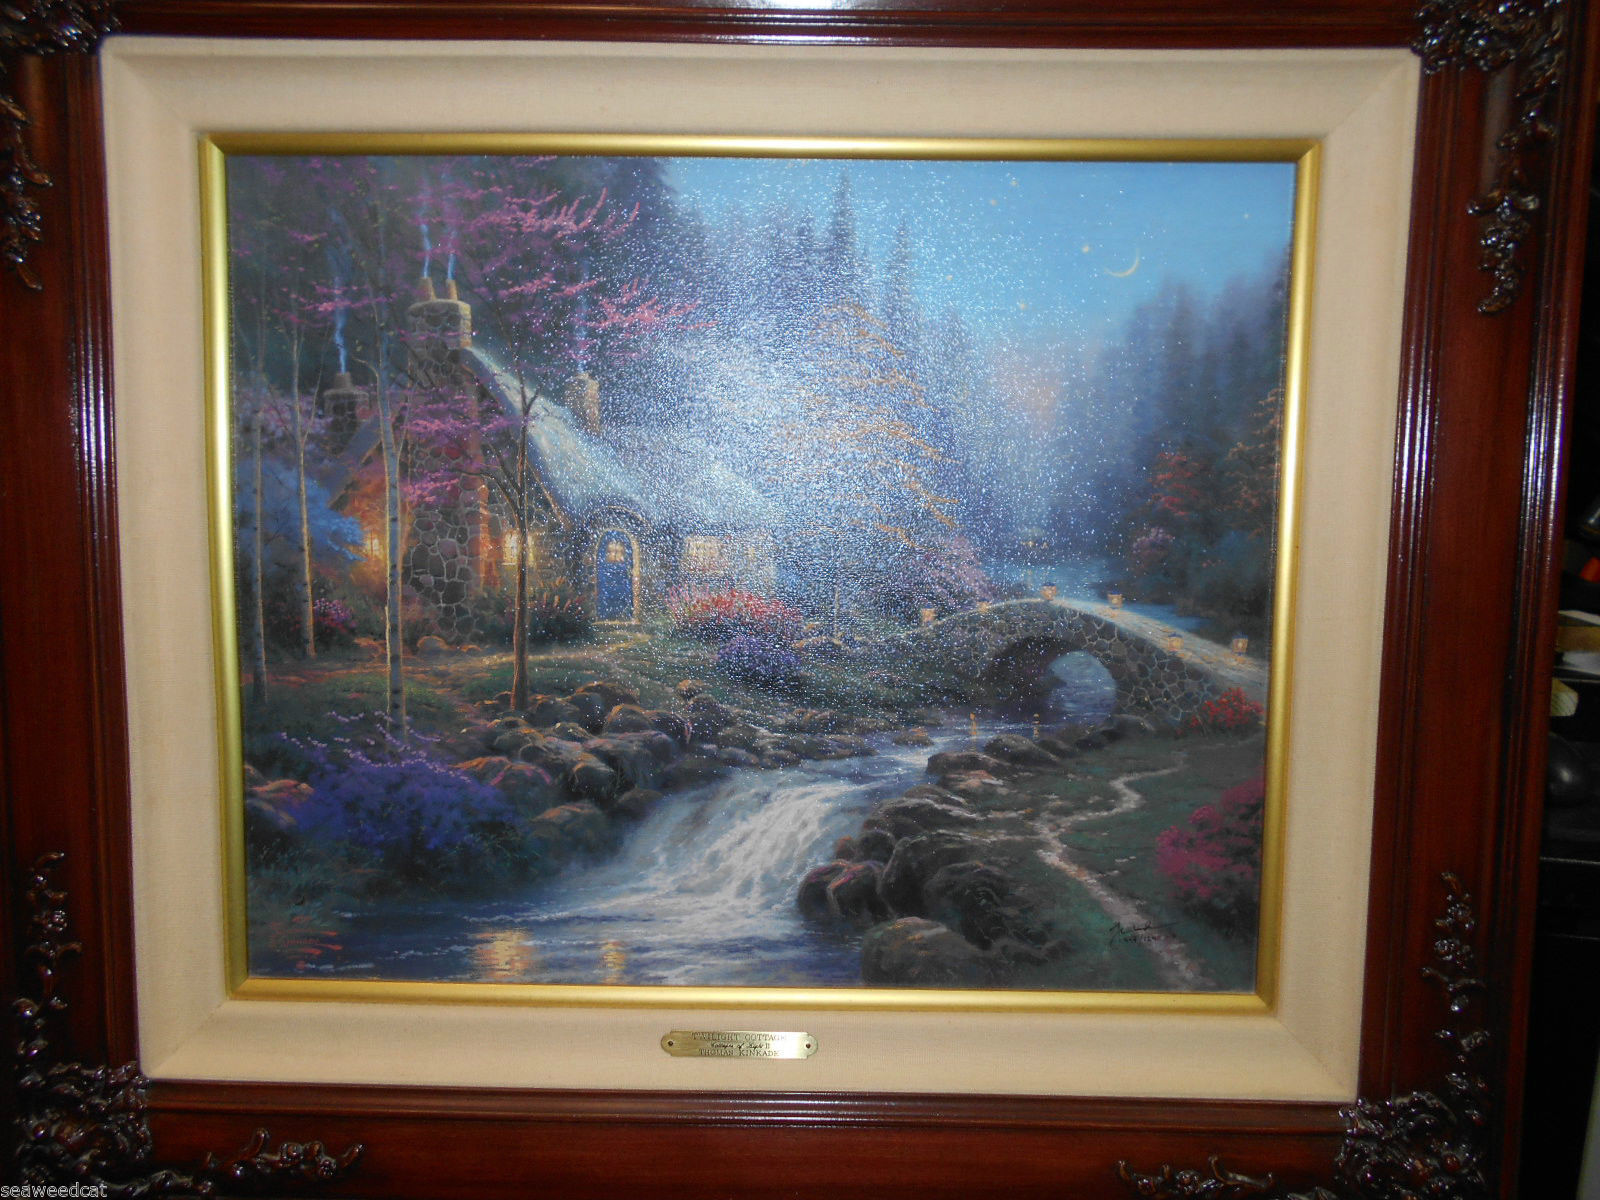 Thomas Kinkade Twilight Cottage Cottages Of Light II16x20 G/P Canvas - 444 /1240